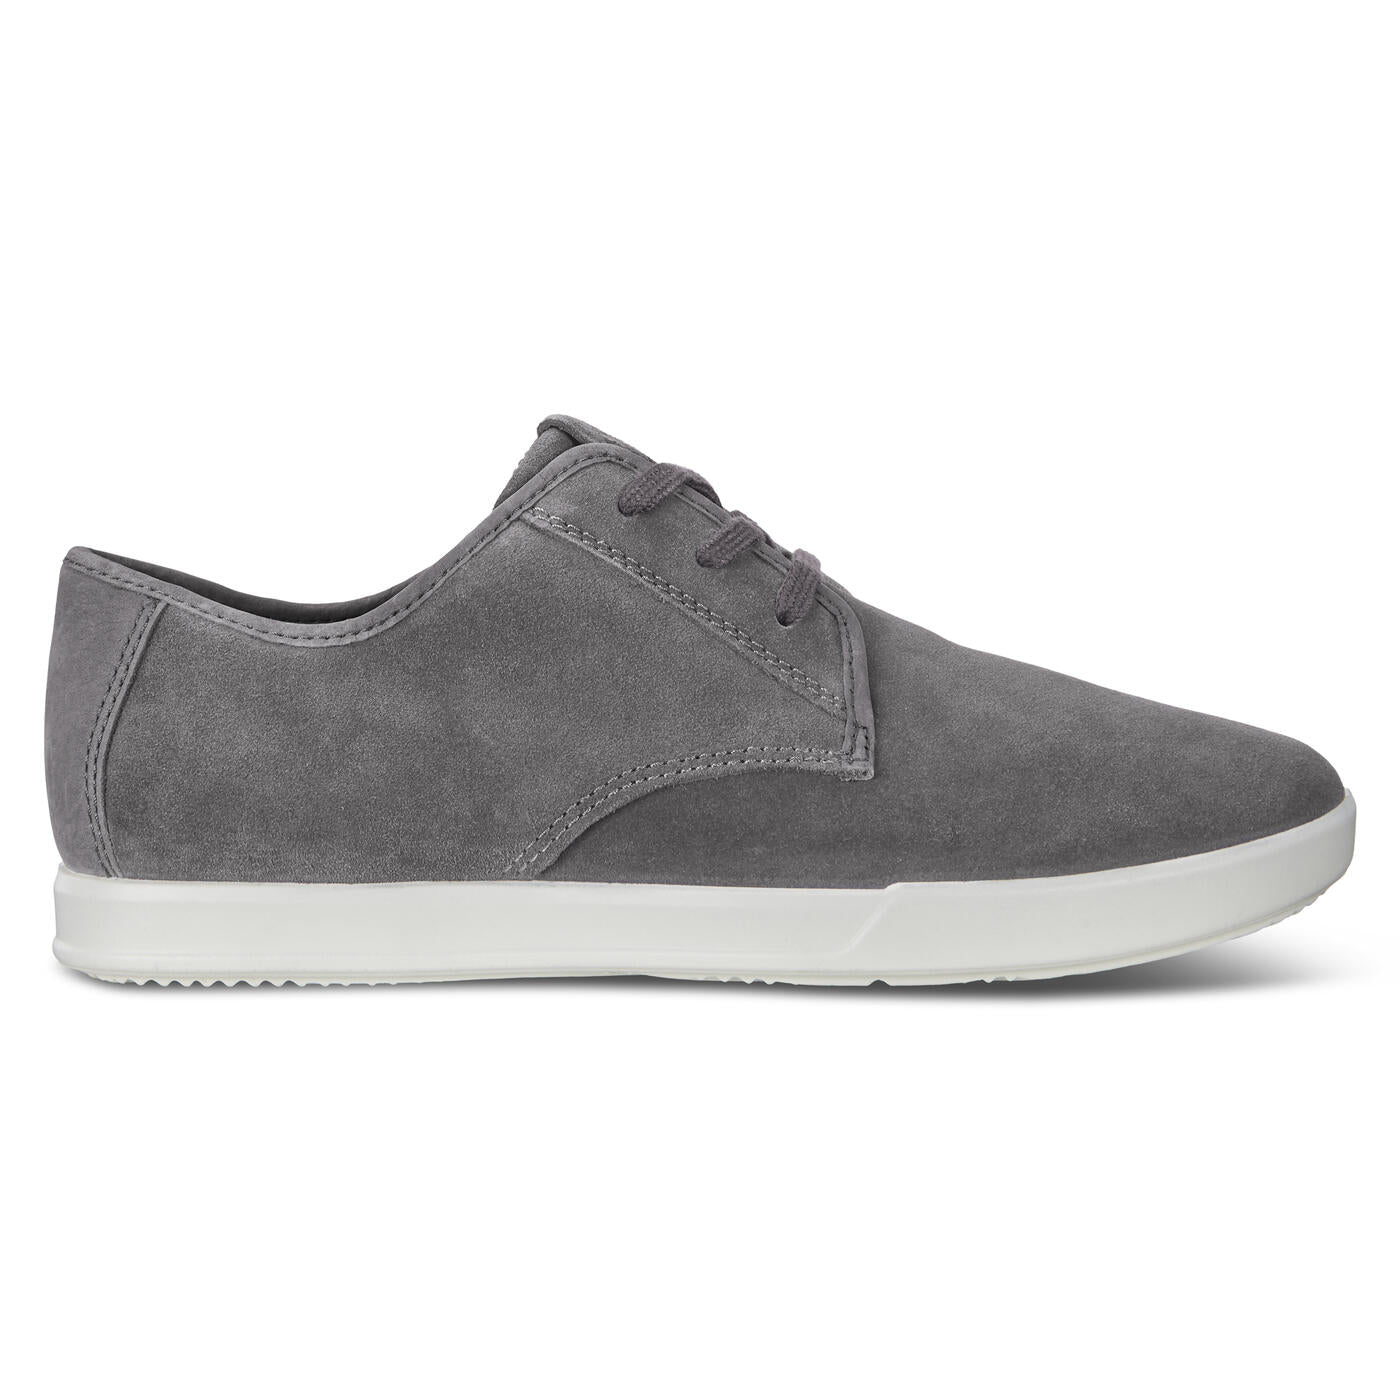 Ecco Collin 2.0 Lace Up - Men's